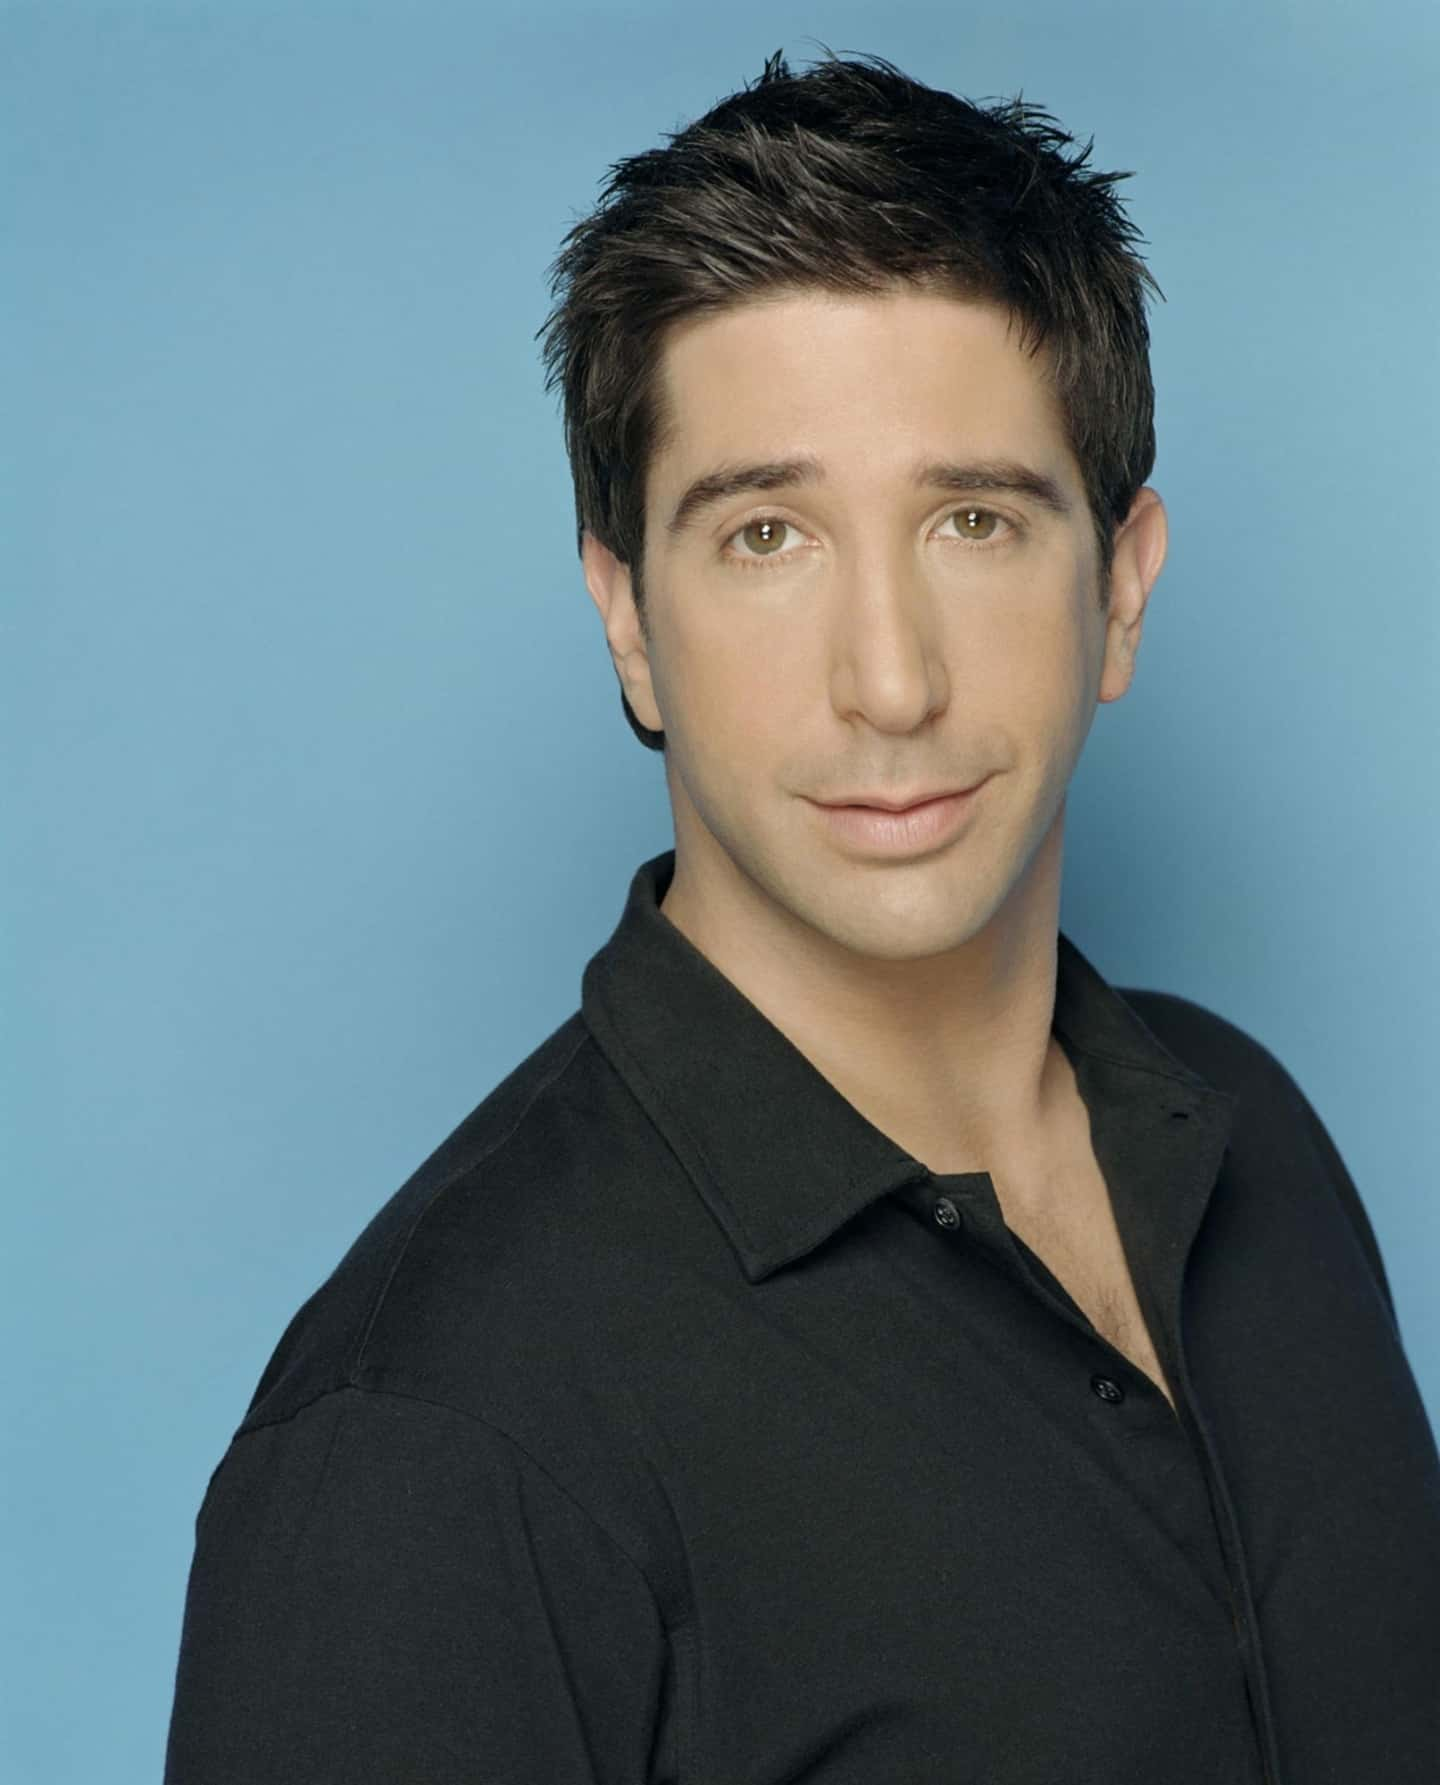 young photo of david schwimmer or ross geller